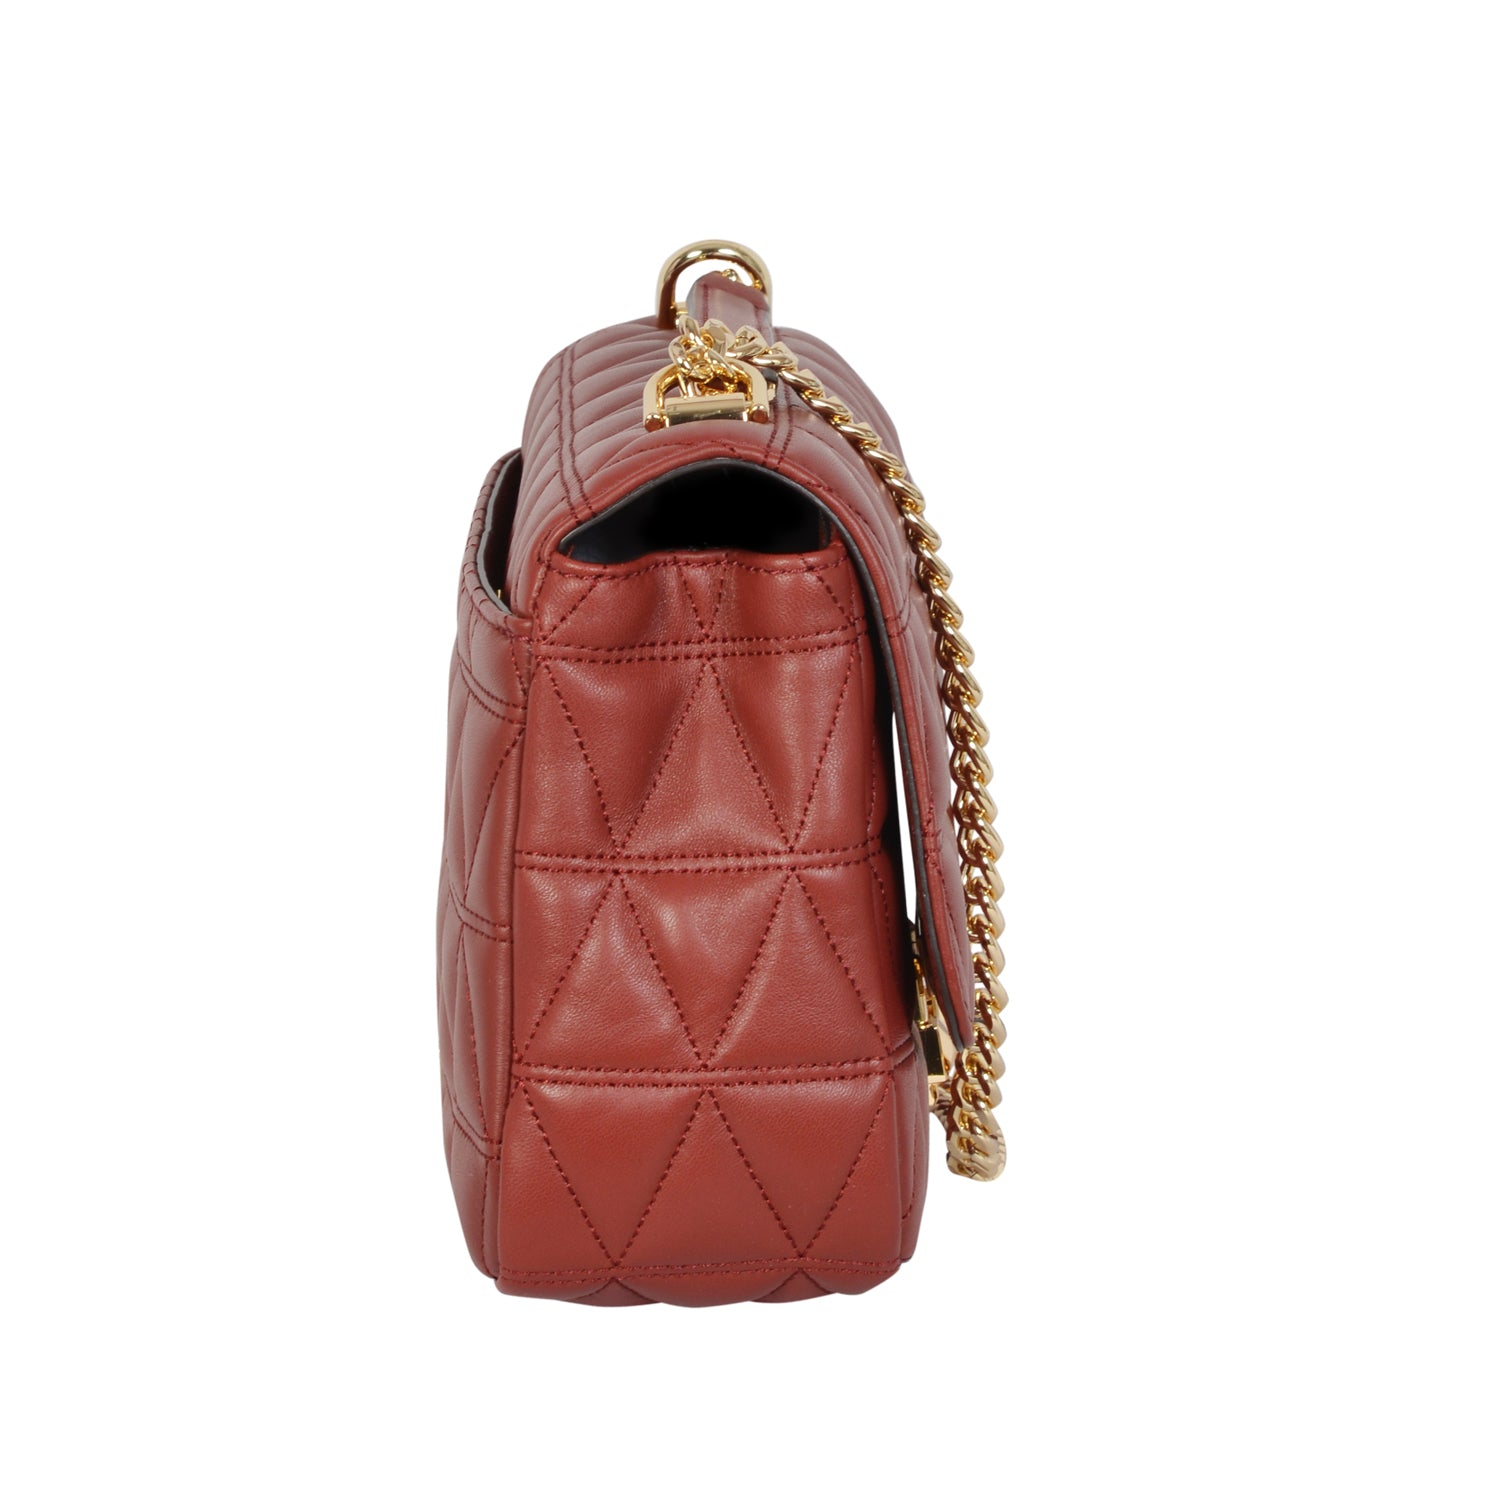 Michael Kors Sloan brandy chain bag in sheepskin leather. | Shop Luxury Shoulder Bag Online